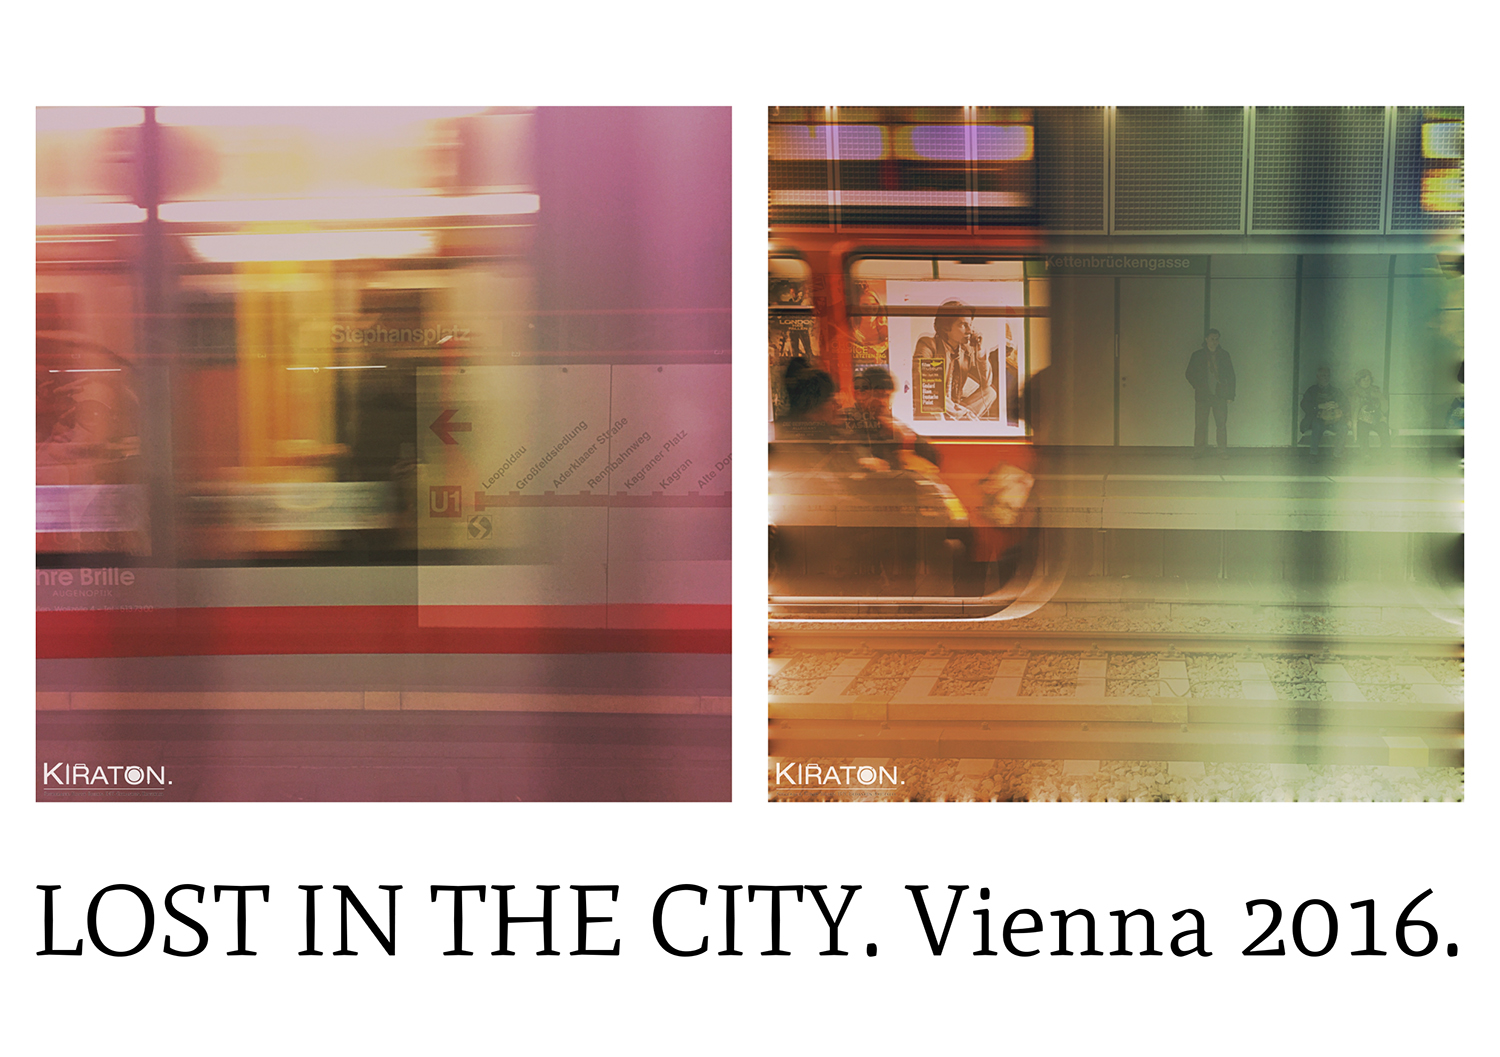 Lost in the City. Vienna 2016